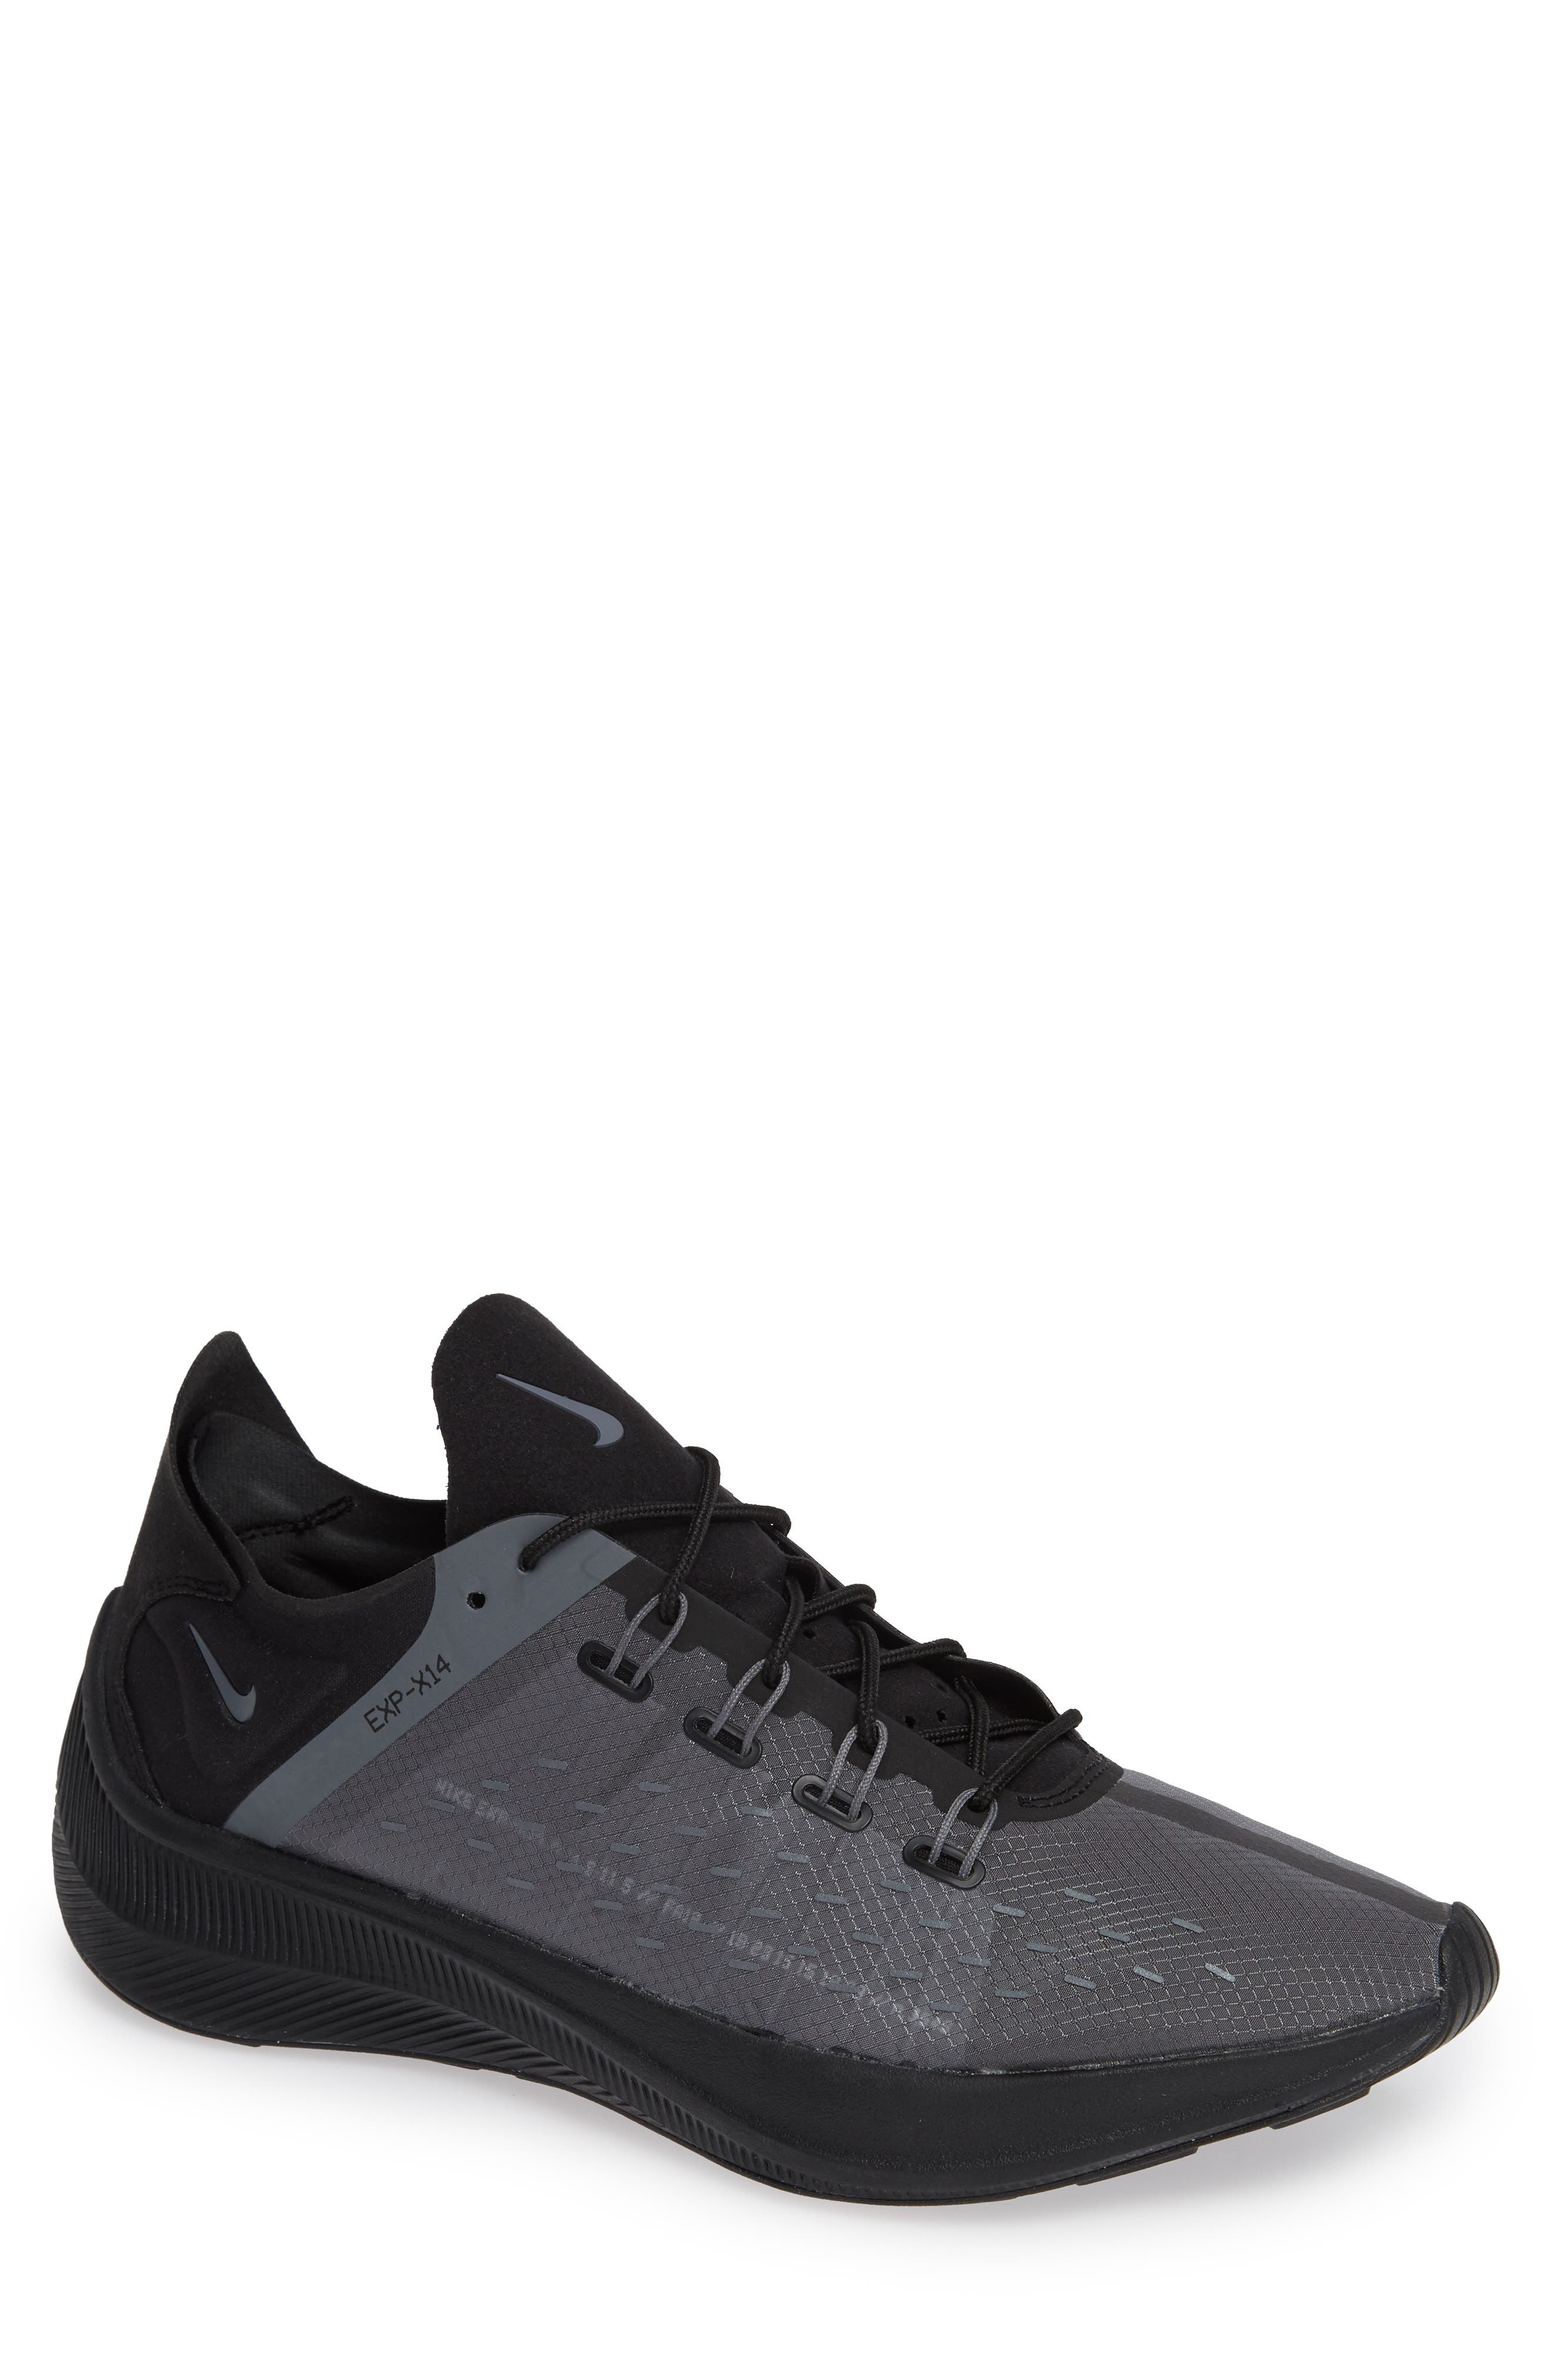 new style 5d0dc ece51 coupon nike free run 3.0 v4 shoes mens black reflect silver cy102nike air  91cdd 1c2b2  ireland nike exp x14 running shoe men 8c429 58cdb